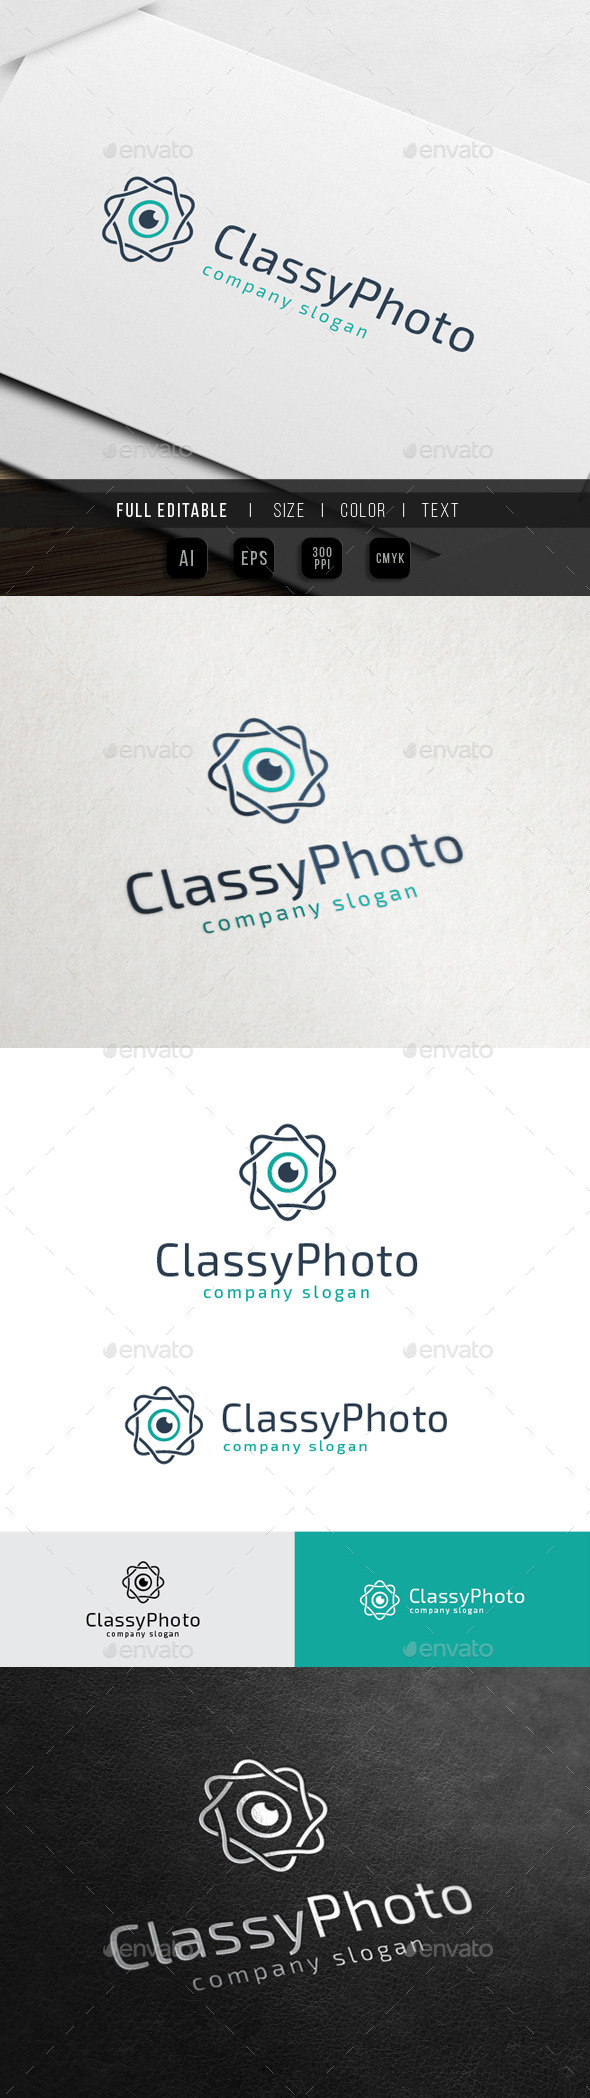 Classy Photo - Royal Vision - Objects Logo Templates